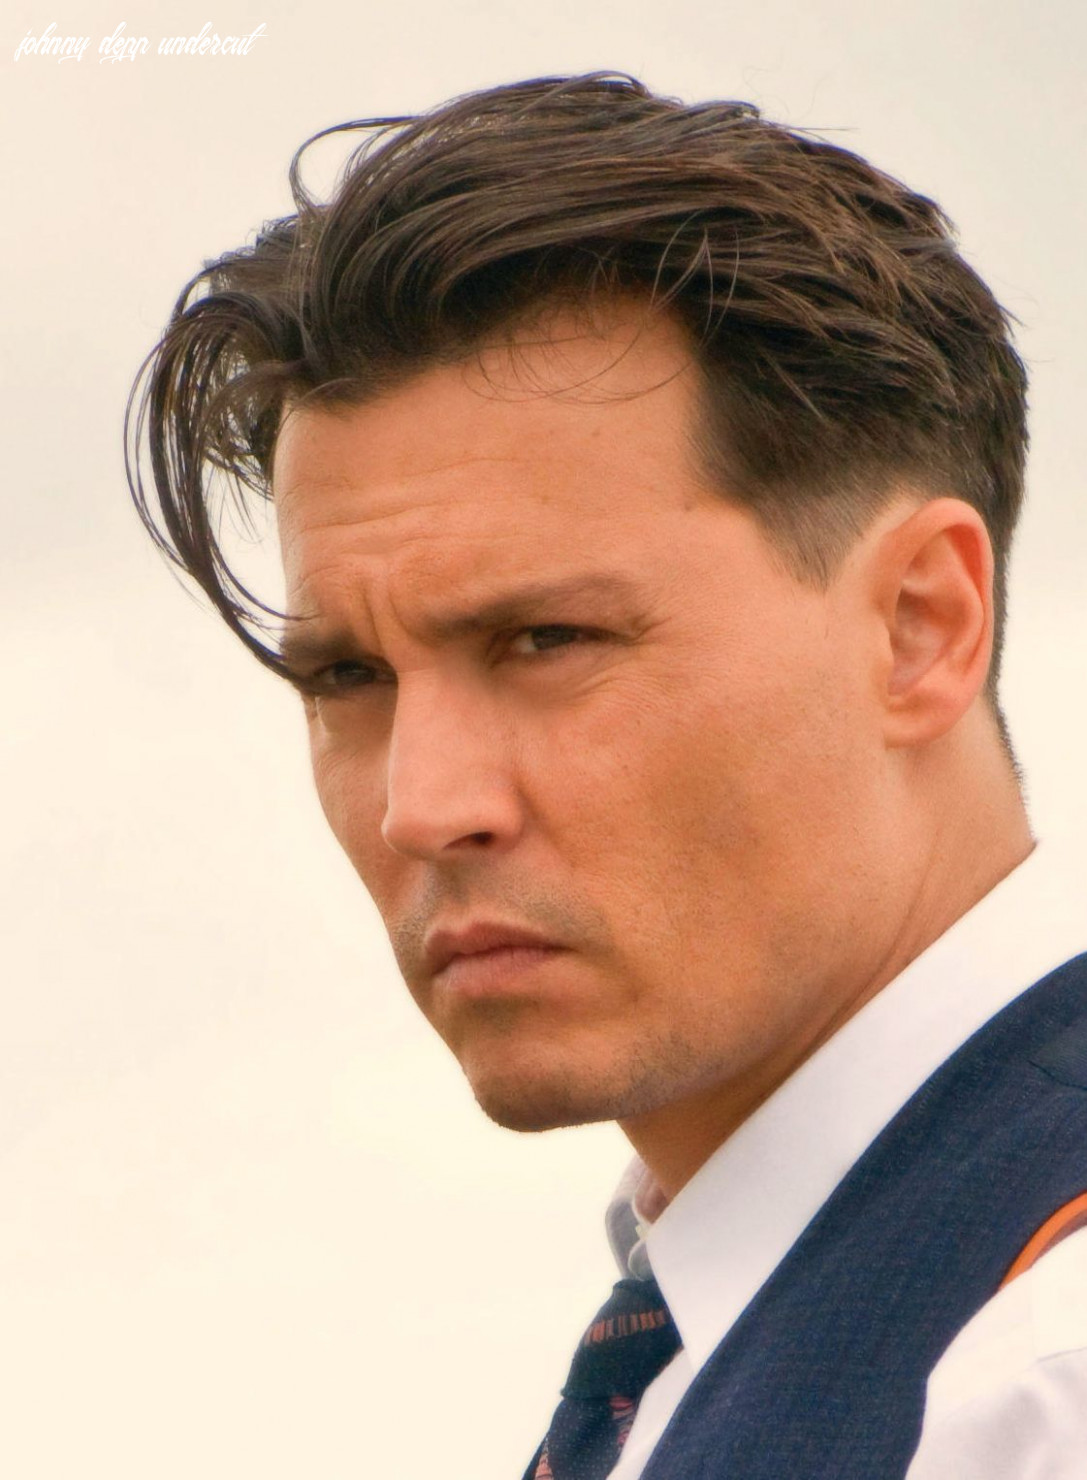 John dillinger classic haircut | johnny depp hairstyle, johnny